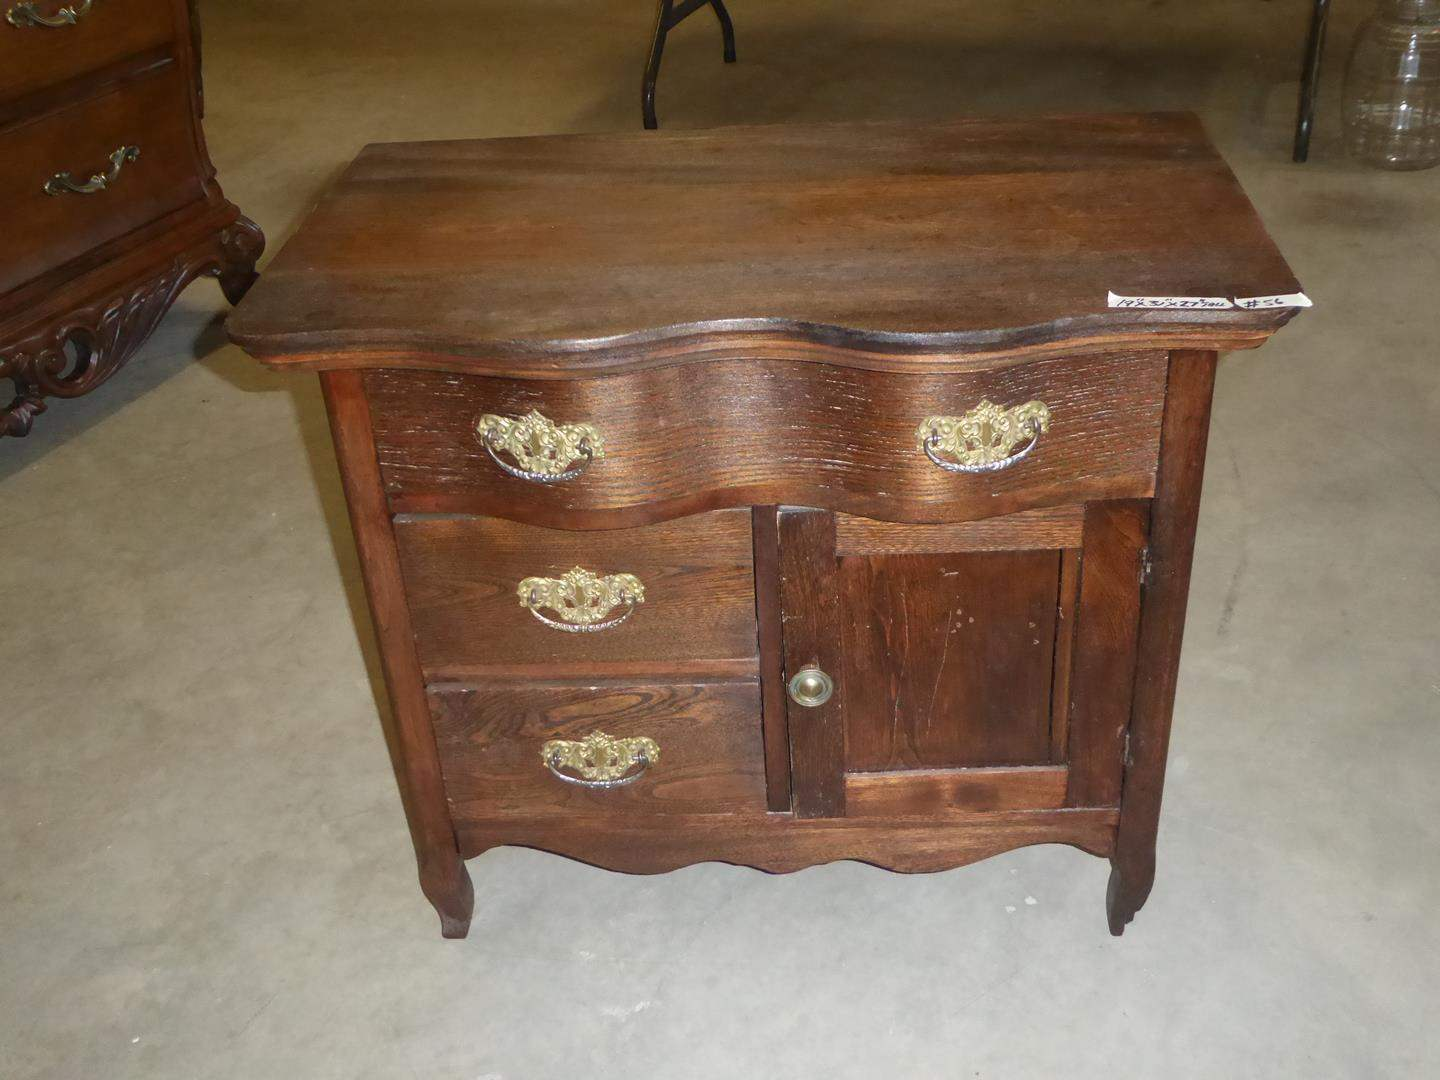 Lot # 56 - Antique Solid Wood Wash Stand w/Dovetailed Drawers (main image)